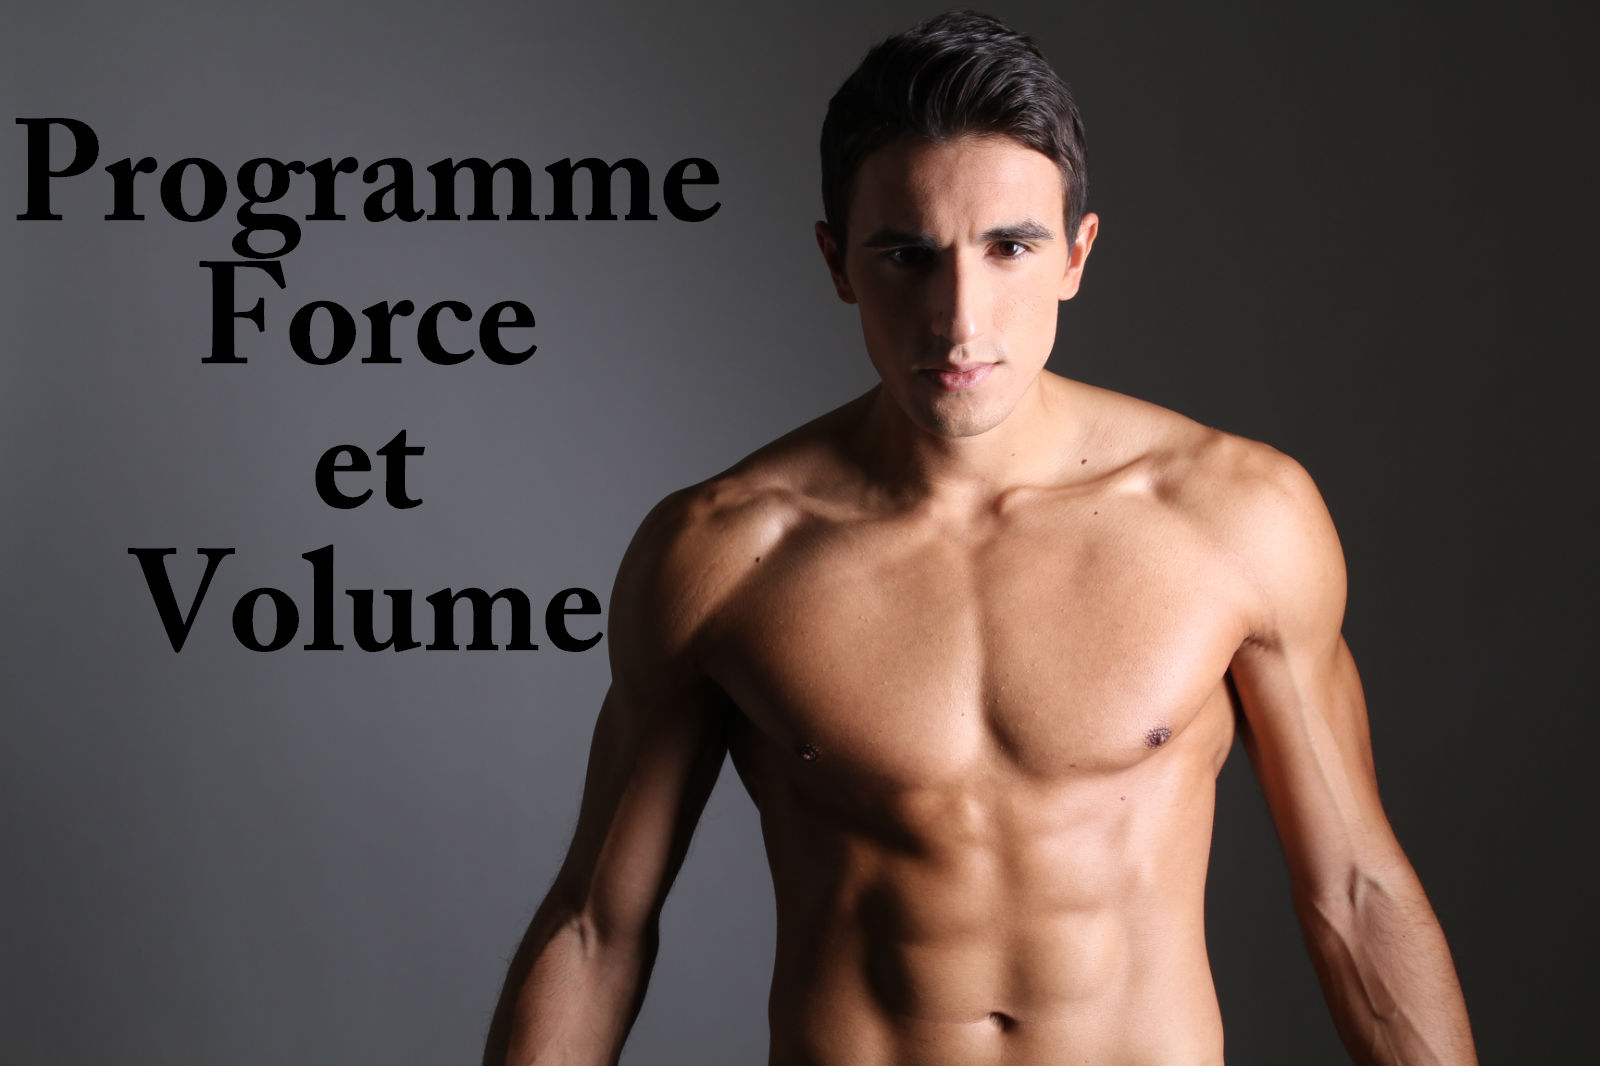 Programme de musculation force et volume spartiate for Complement musculation